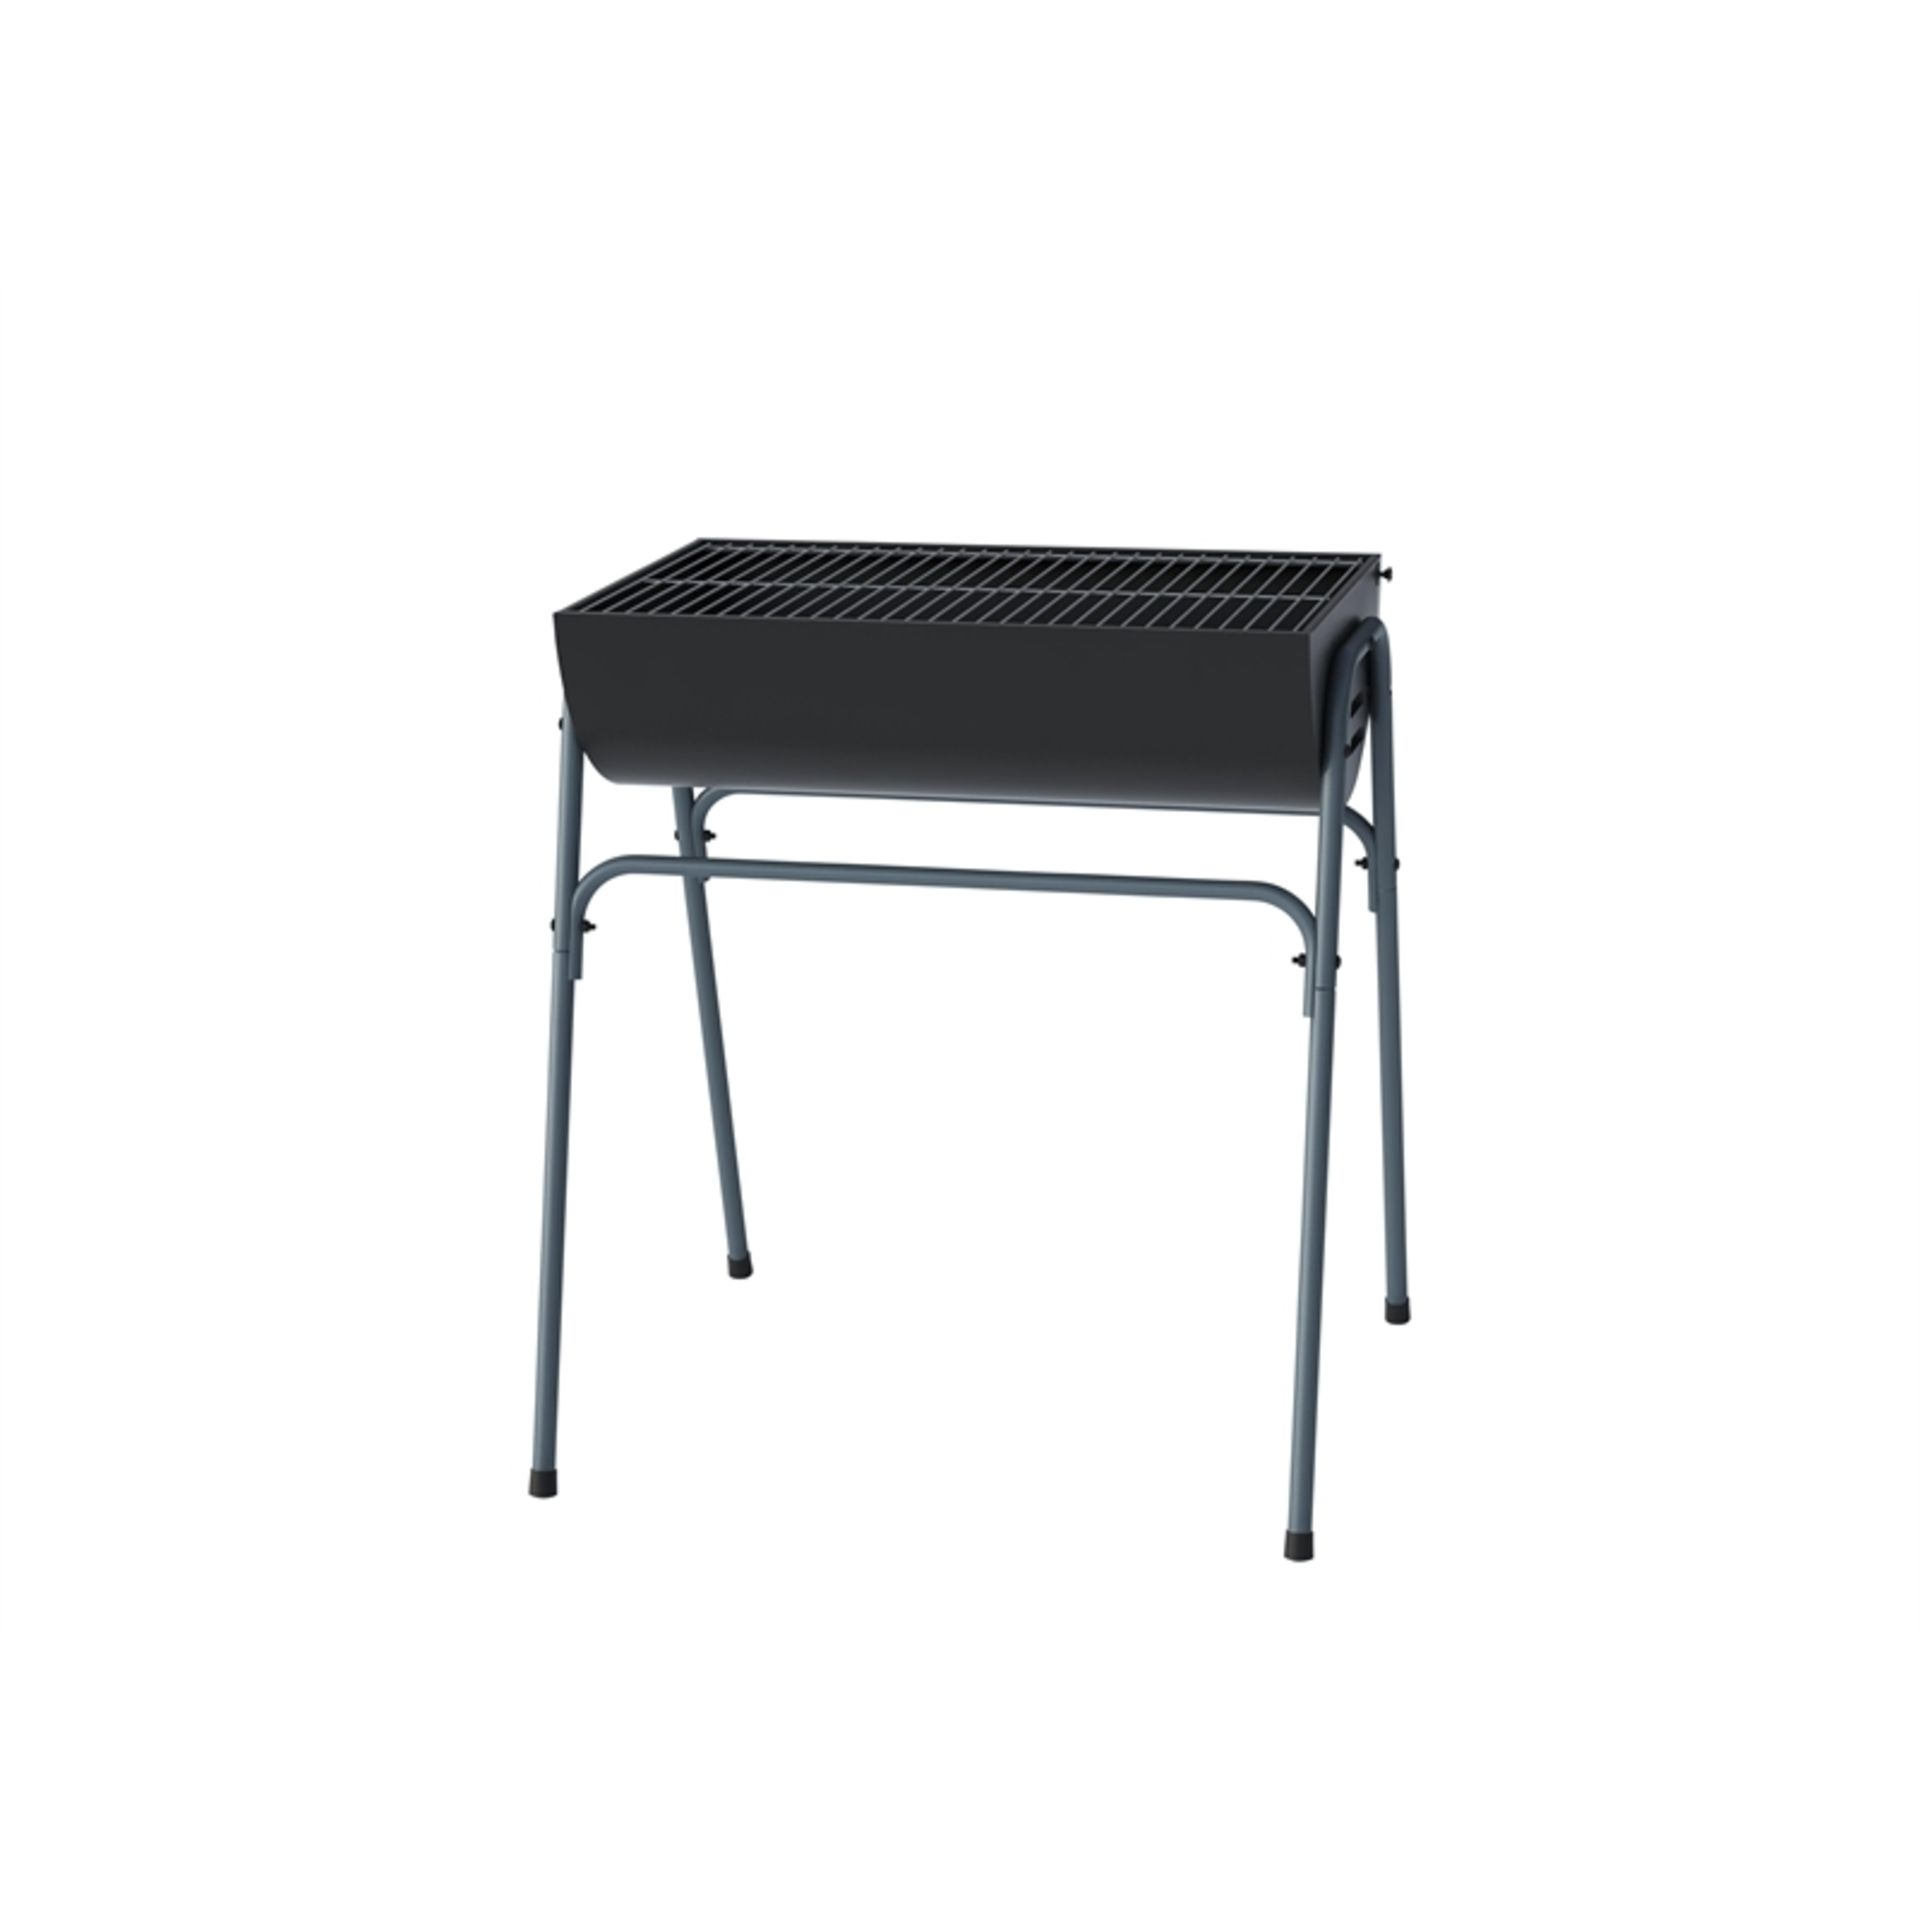 Lot 50025 - V Brand New Half Oil Drum Charcoal BBQ With Chrome Grill On Stand